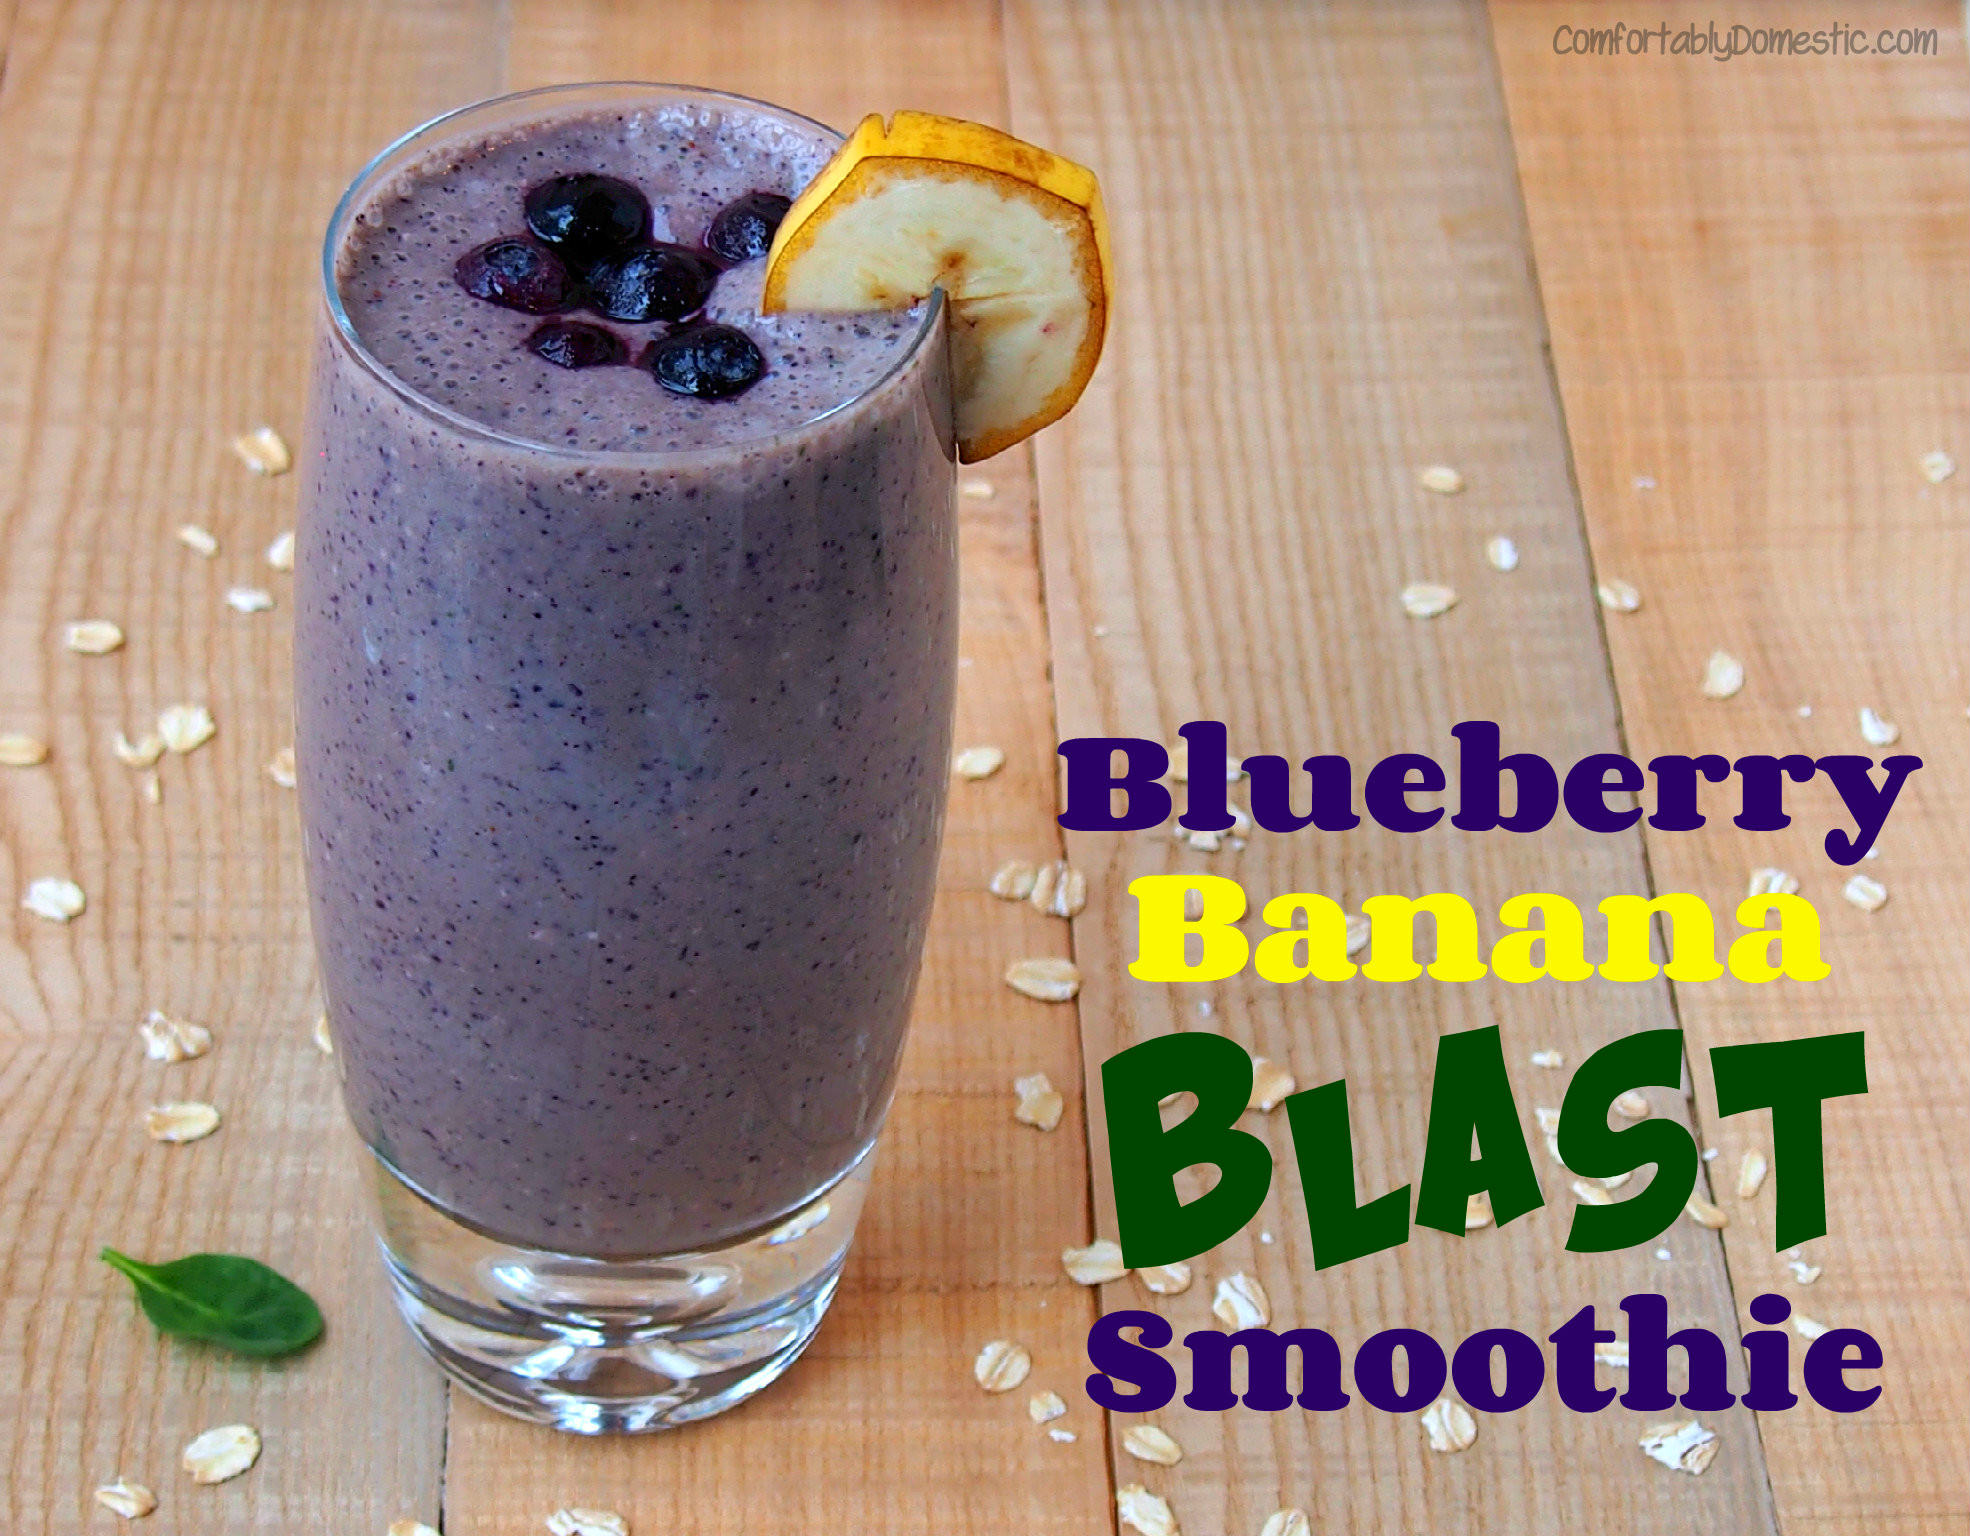 Blueberry banana smoothies make for a nutritious breakfast, ready in less than five minutes! Blending fruits, greens, and whole grains with vitamin rich milk and vanilla yogurt for a healthy smoothie that the whole family will love. | ComfortablyDomestic.com